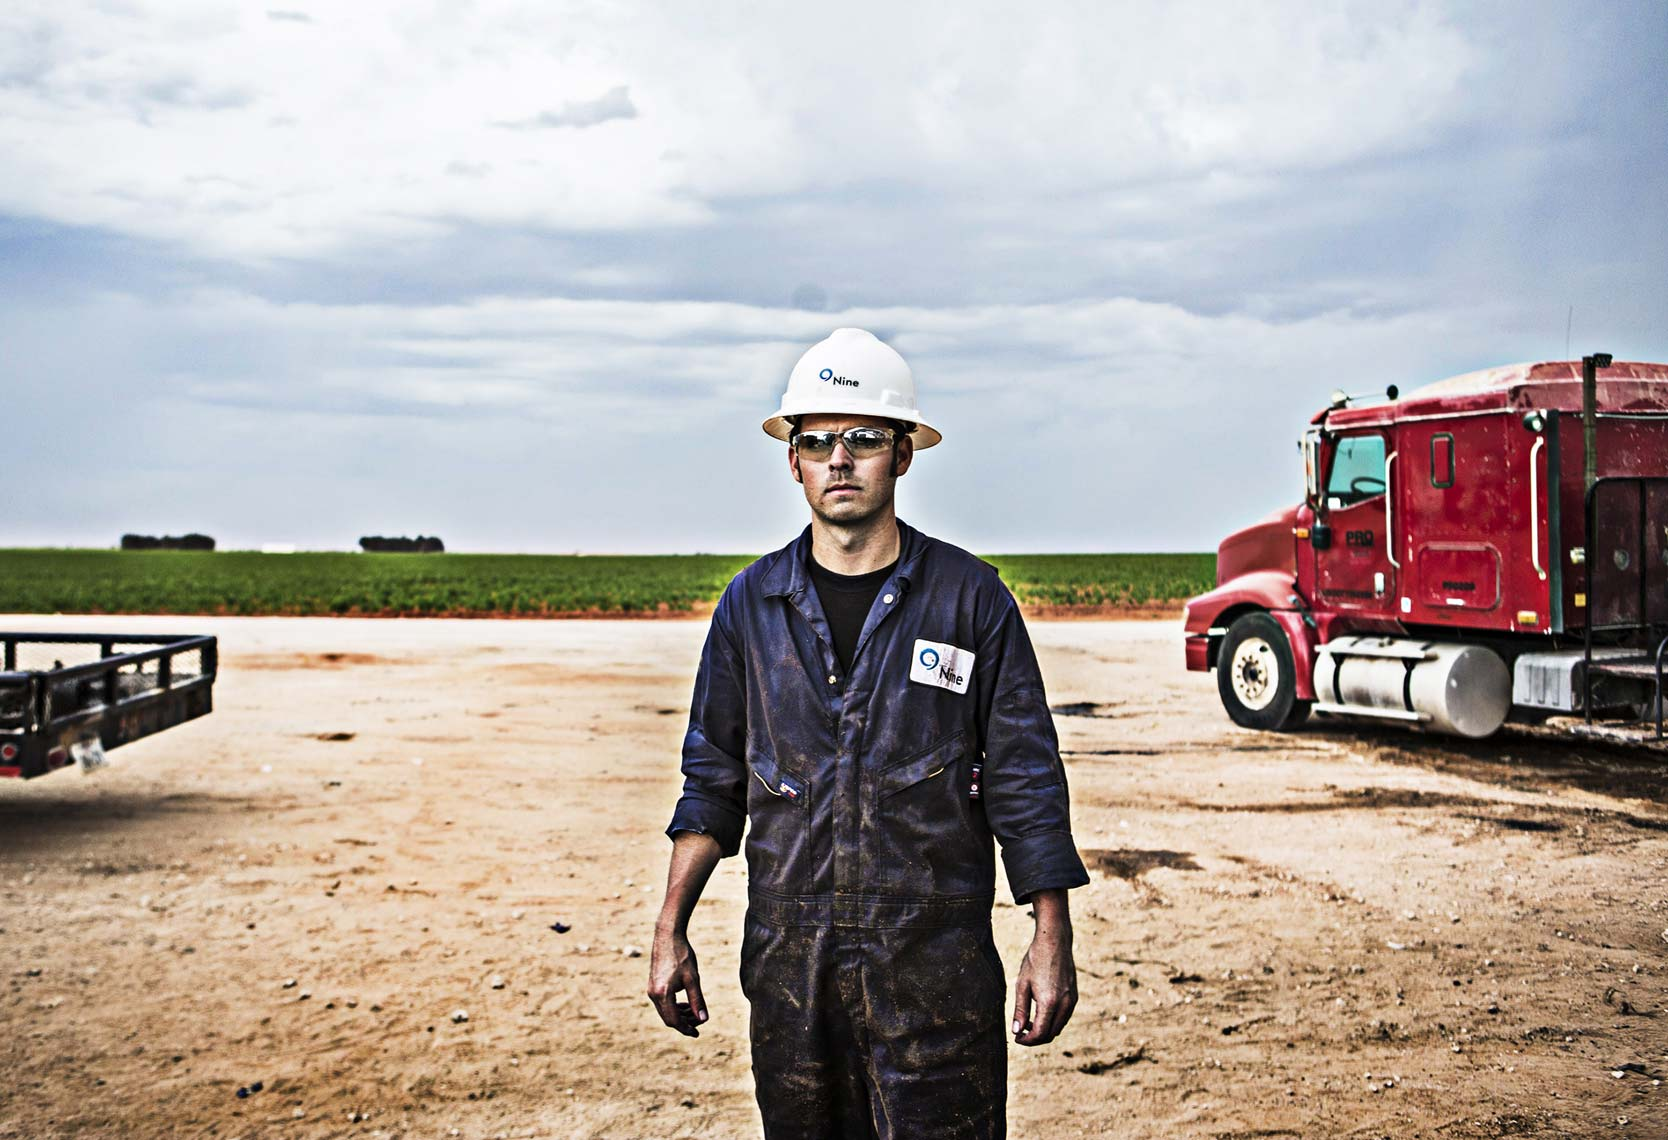 Oil & Gas Industrial Photography by Felix Sanchez